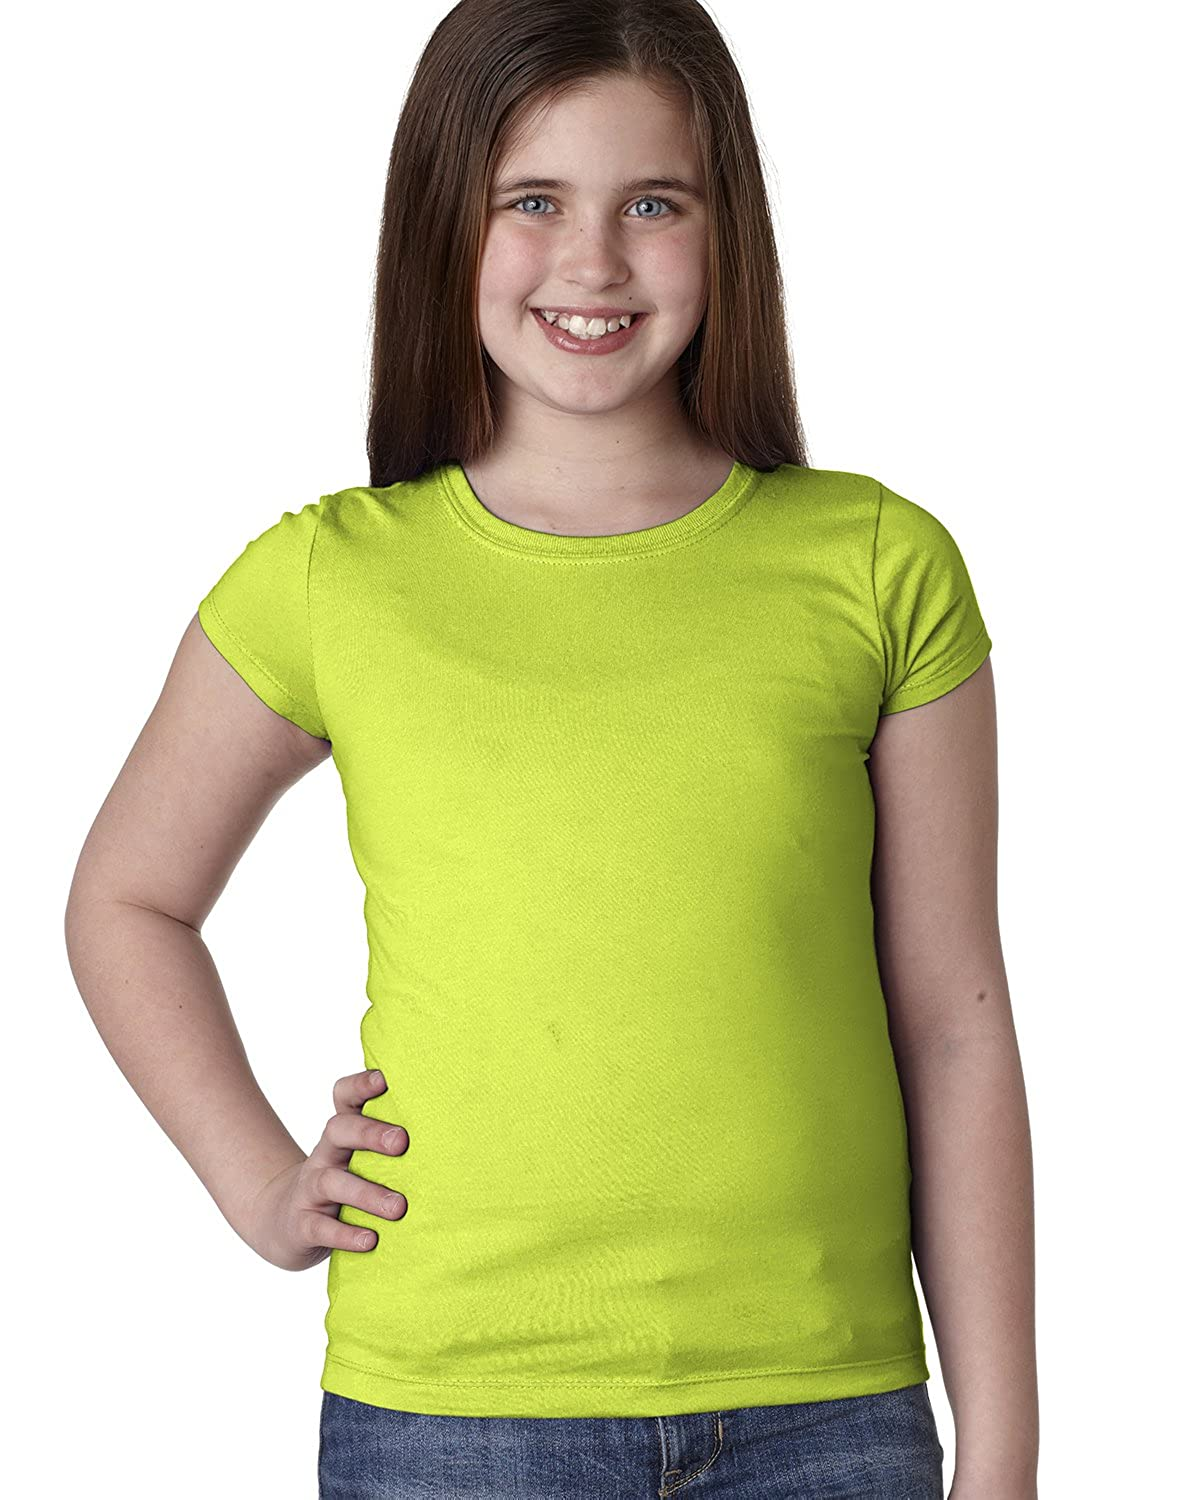 Next Level 3710 Youth Cotton Princess Tee Next Level N3710